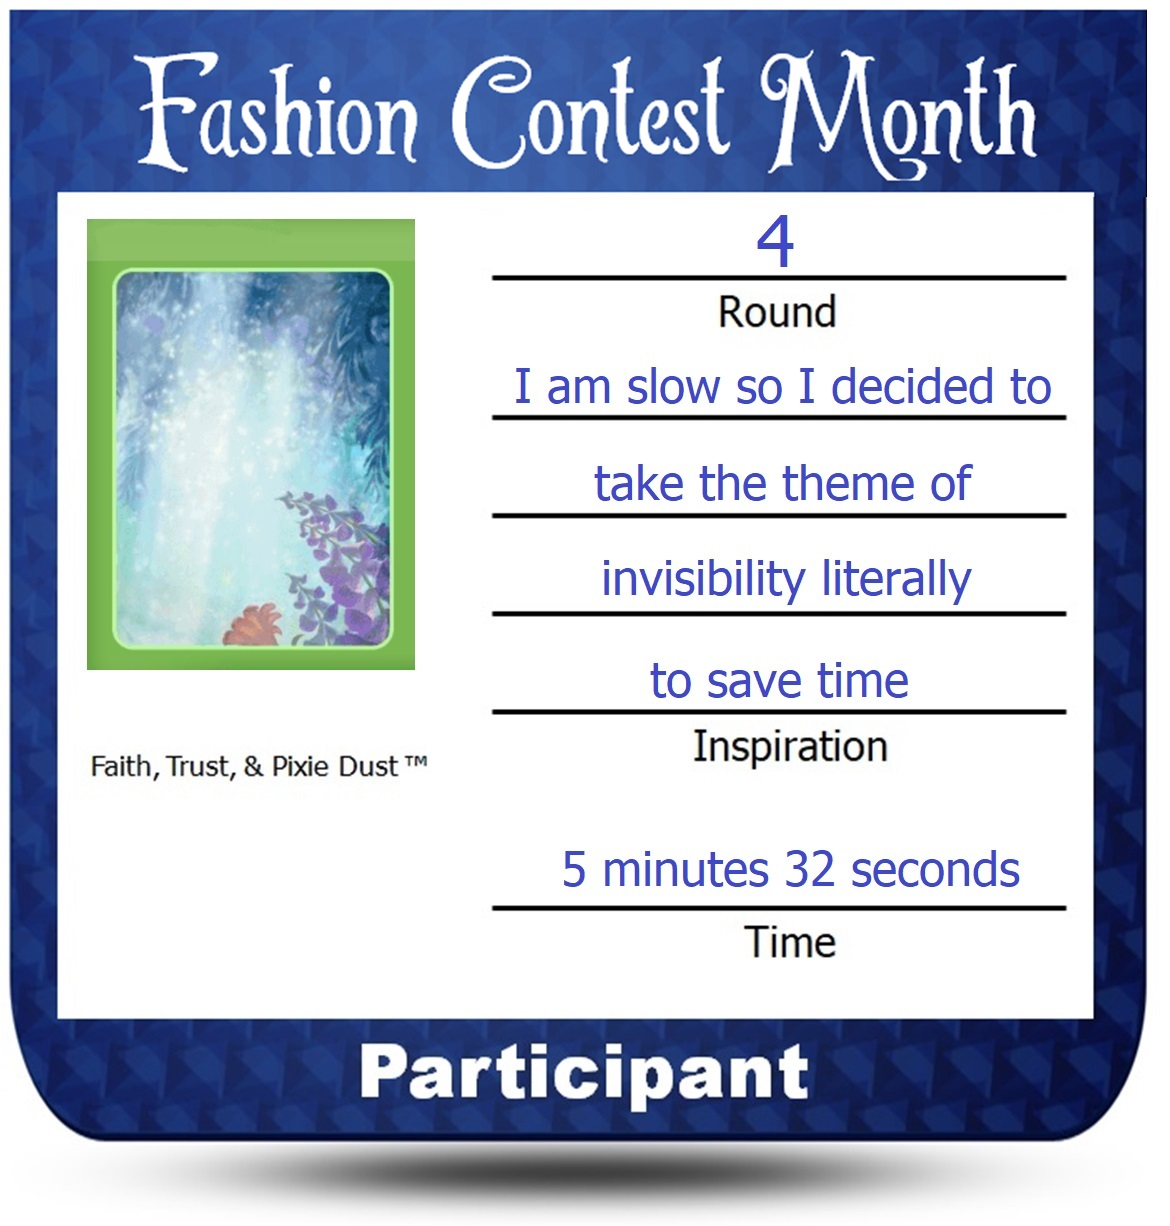 Participant Entry Template R4.jpg